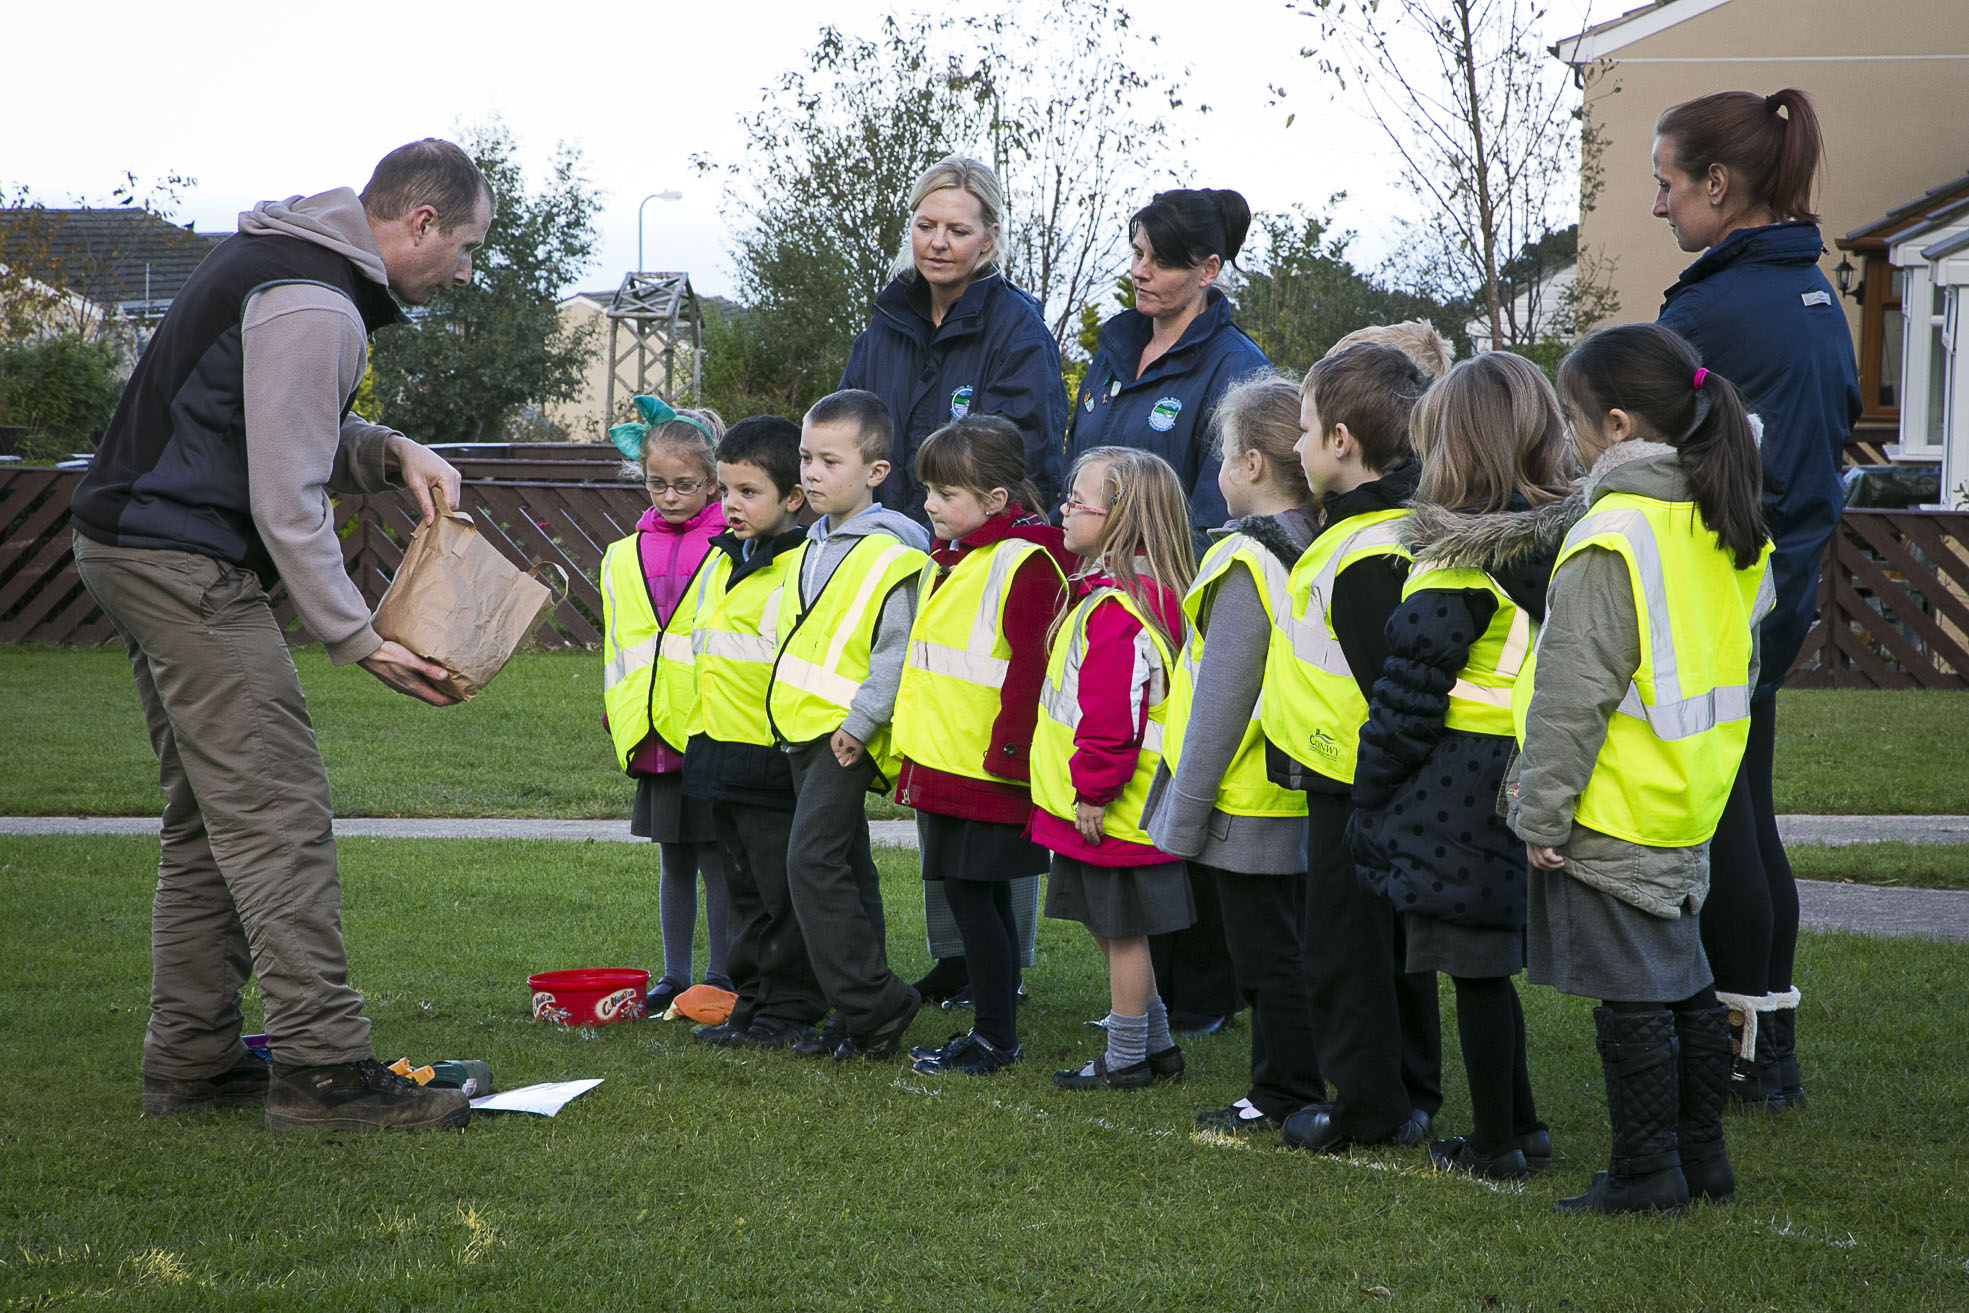 Cartrefi Conwy Peulwys Estate. Bulb planting. Children from the local primary school listen to instructions from with environemental development officer Matt Stowe.